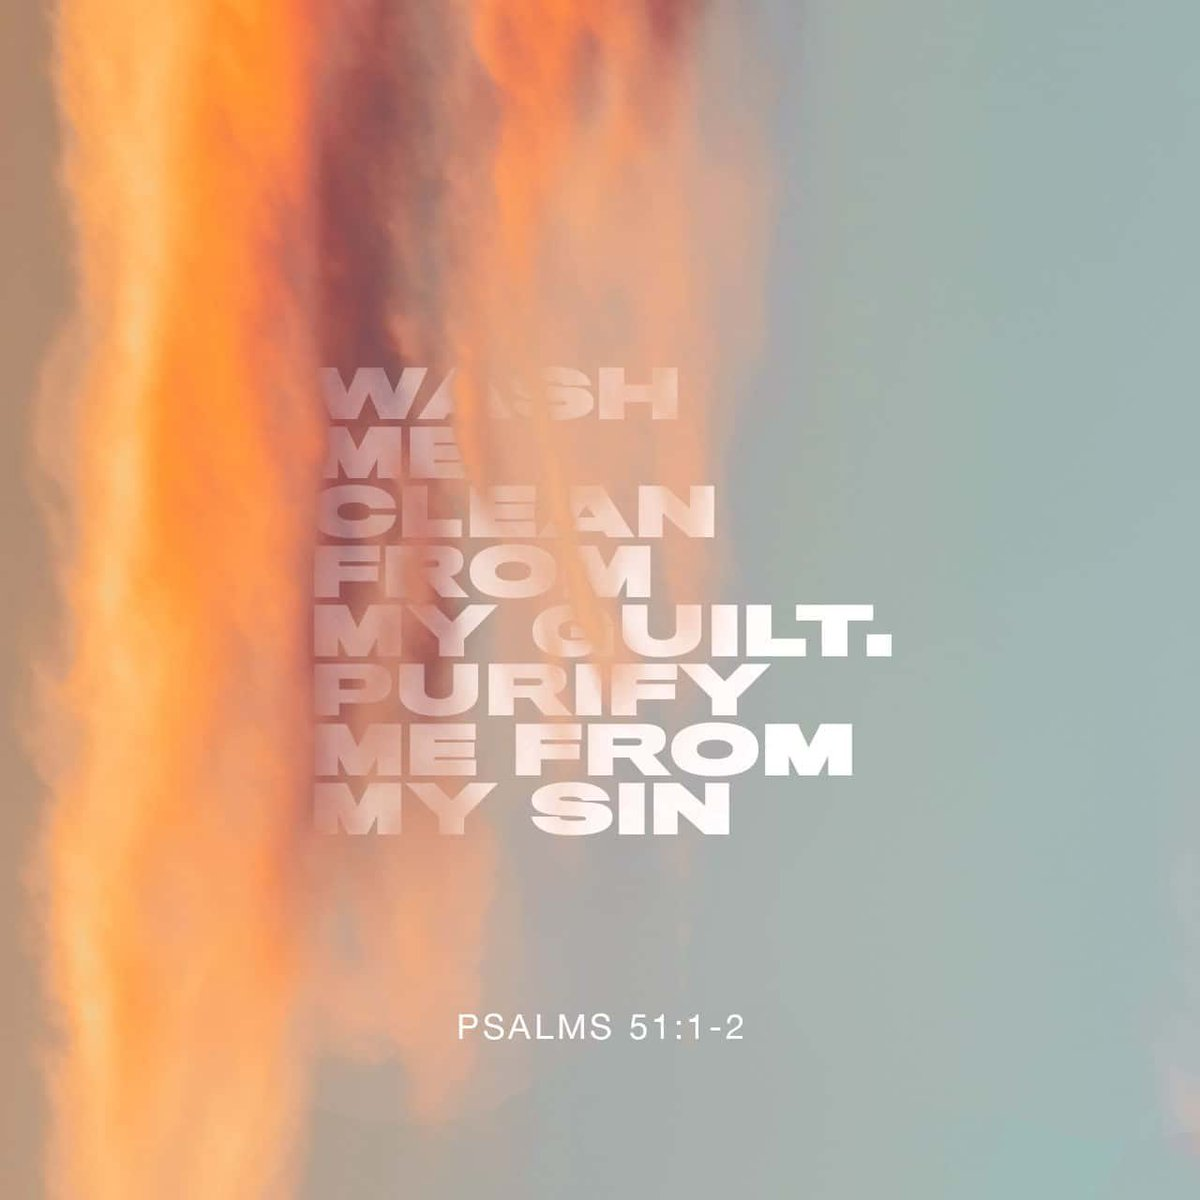 Psalms 51:1-2 ✝️🙏🏾😇 #youversion #holybible #kingjamesversion #psalms5112 #verseoftheday #september17 #bible2020 #purify #me #from #my #sin https://t.co/5dmvfh7lLF